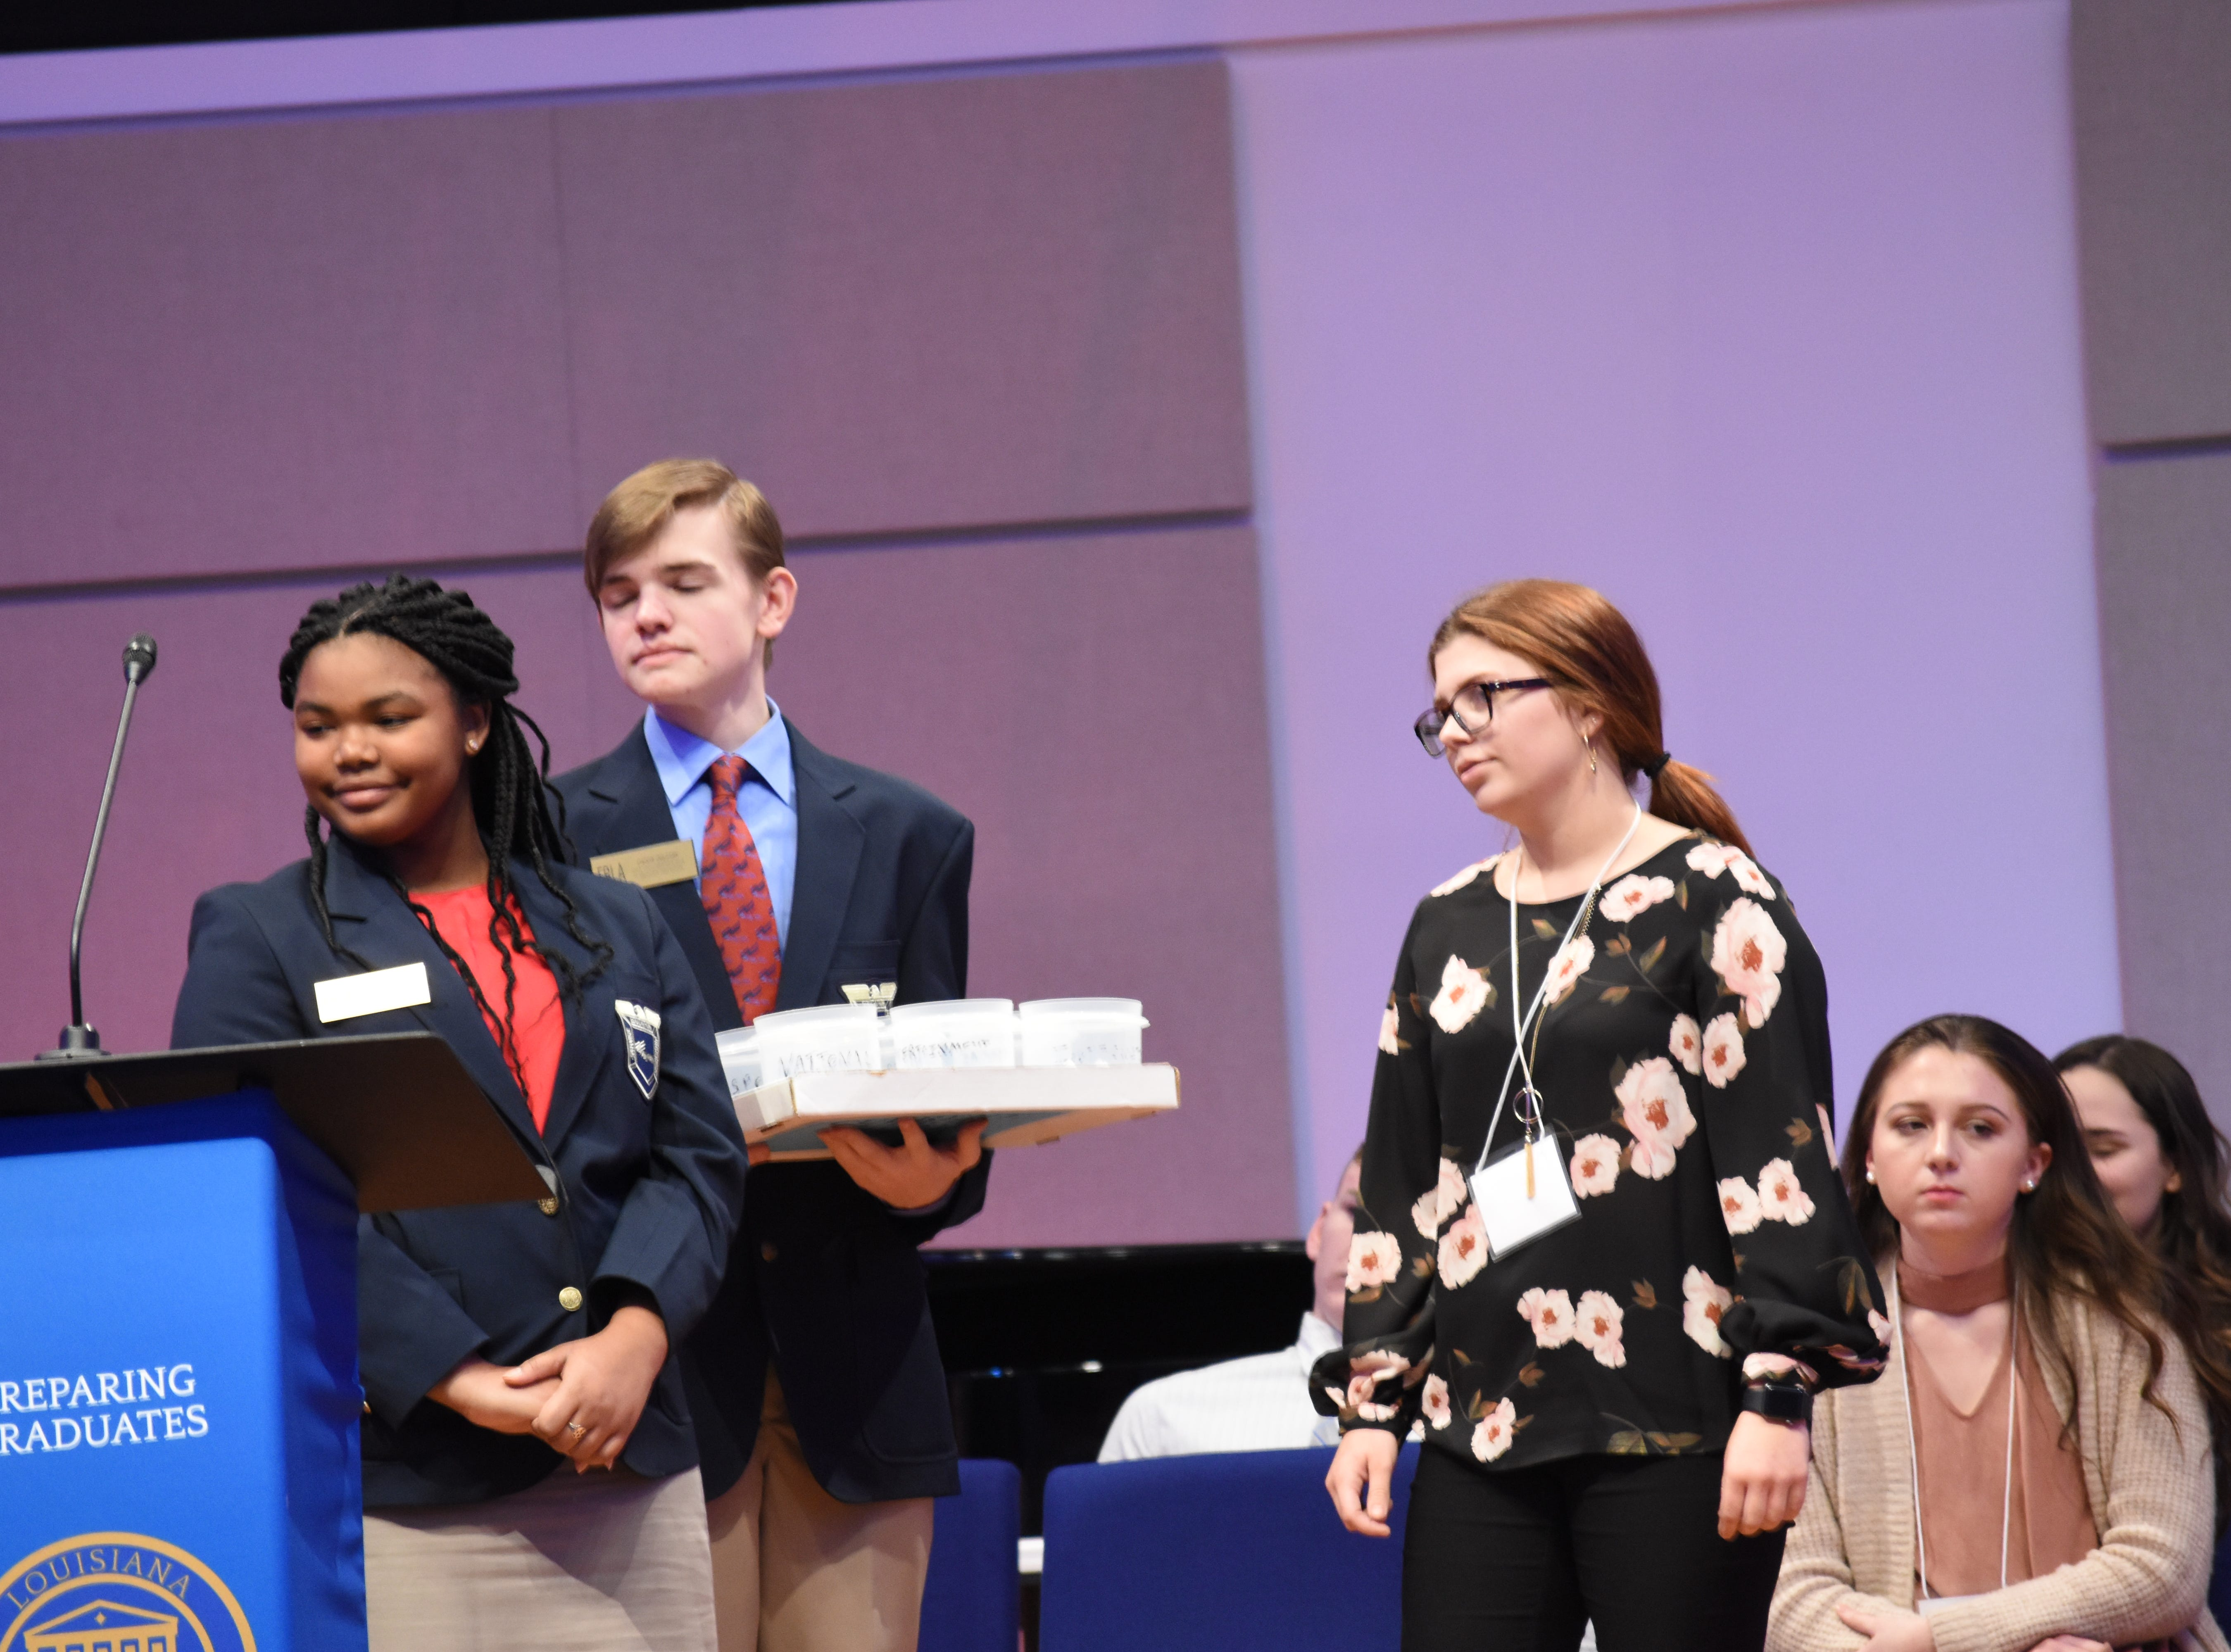 Future Business Leaders of America students play a game where they answer questions about current events. The Pitkin High School Chapter of the Future Business Leaders of America hosted its annual conference at Louisiana College Thursday, Jan. 254, 2019. About 500 students from various high schools throughout the region attended. Students took various tests in subjects such as advertising, economics and business math and attended classes in subjects such as broadcast journalism, impromptu speaking and public speaking.